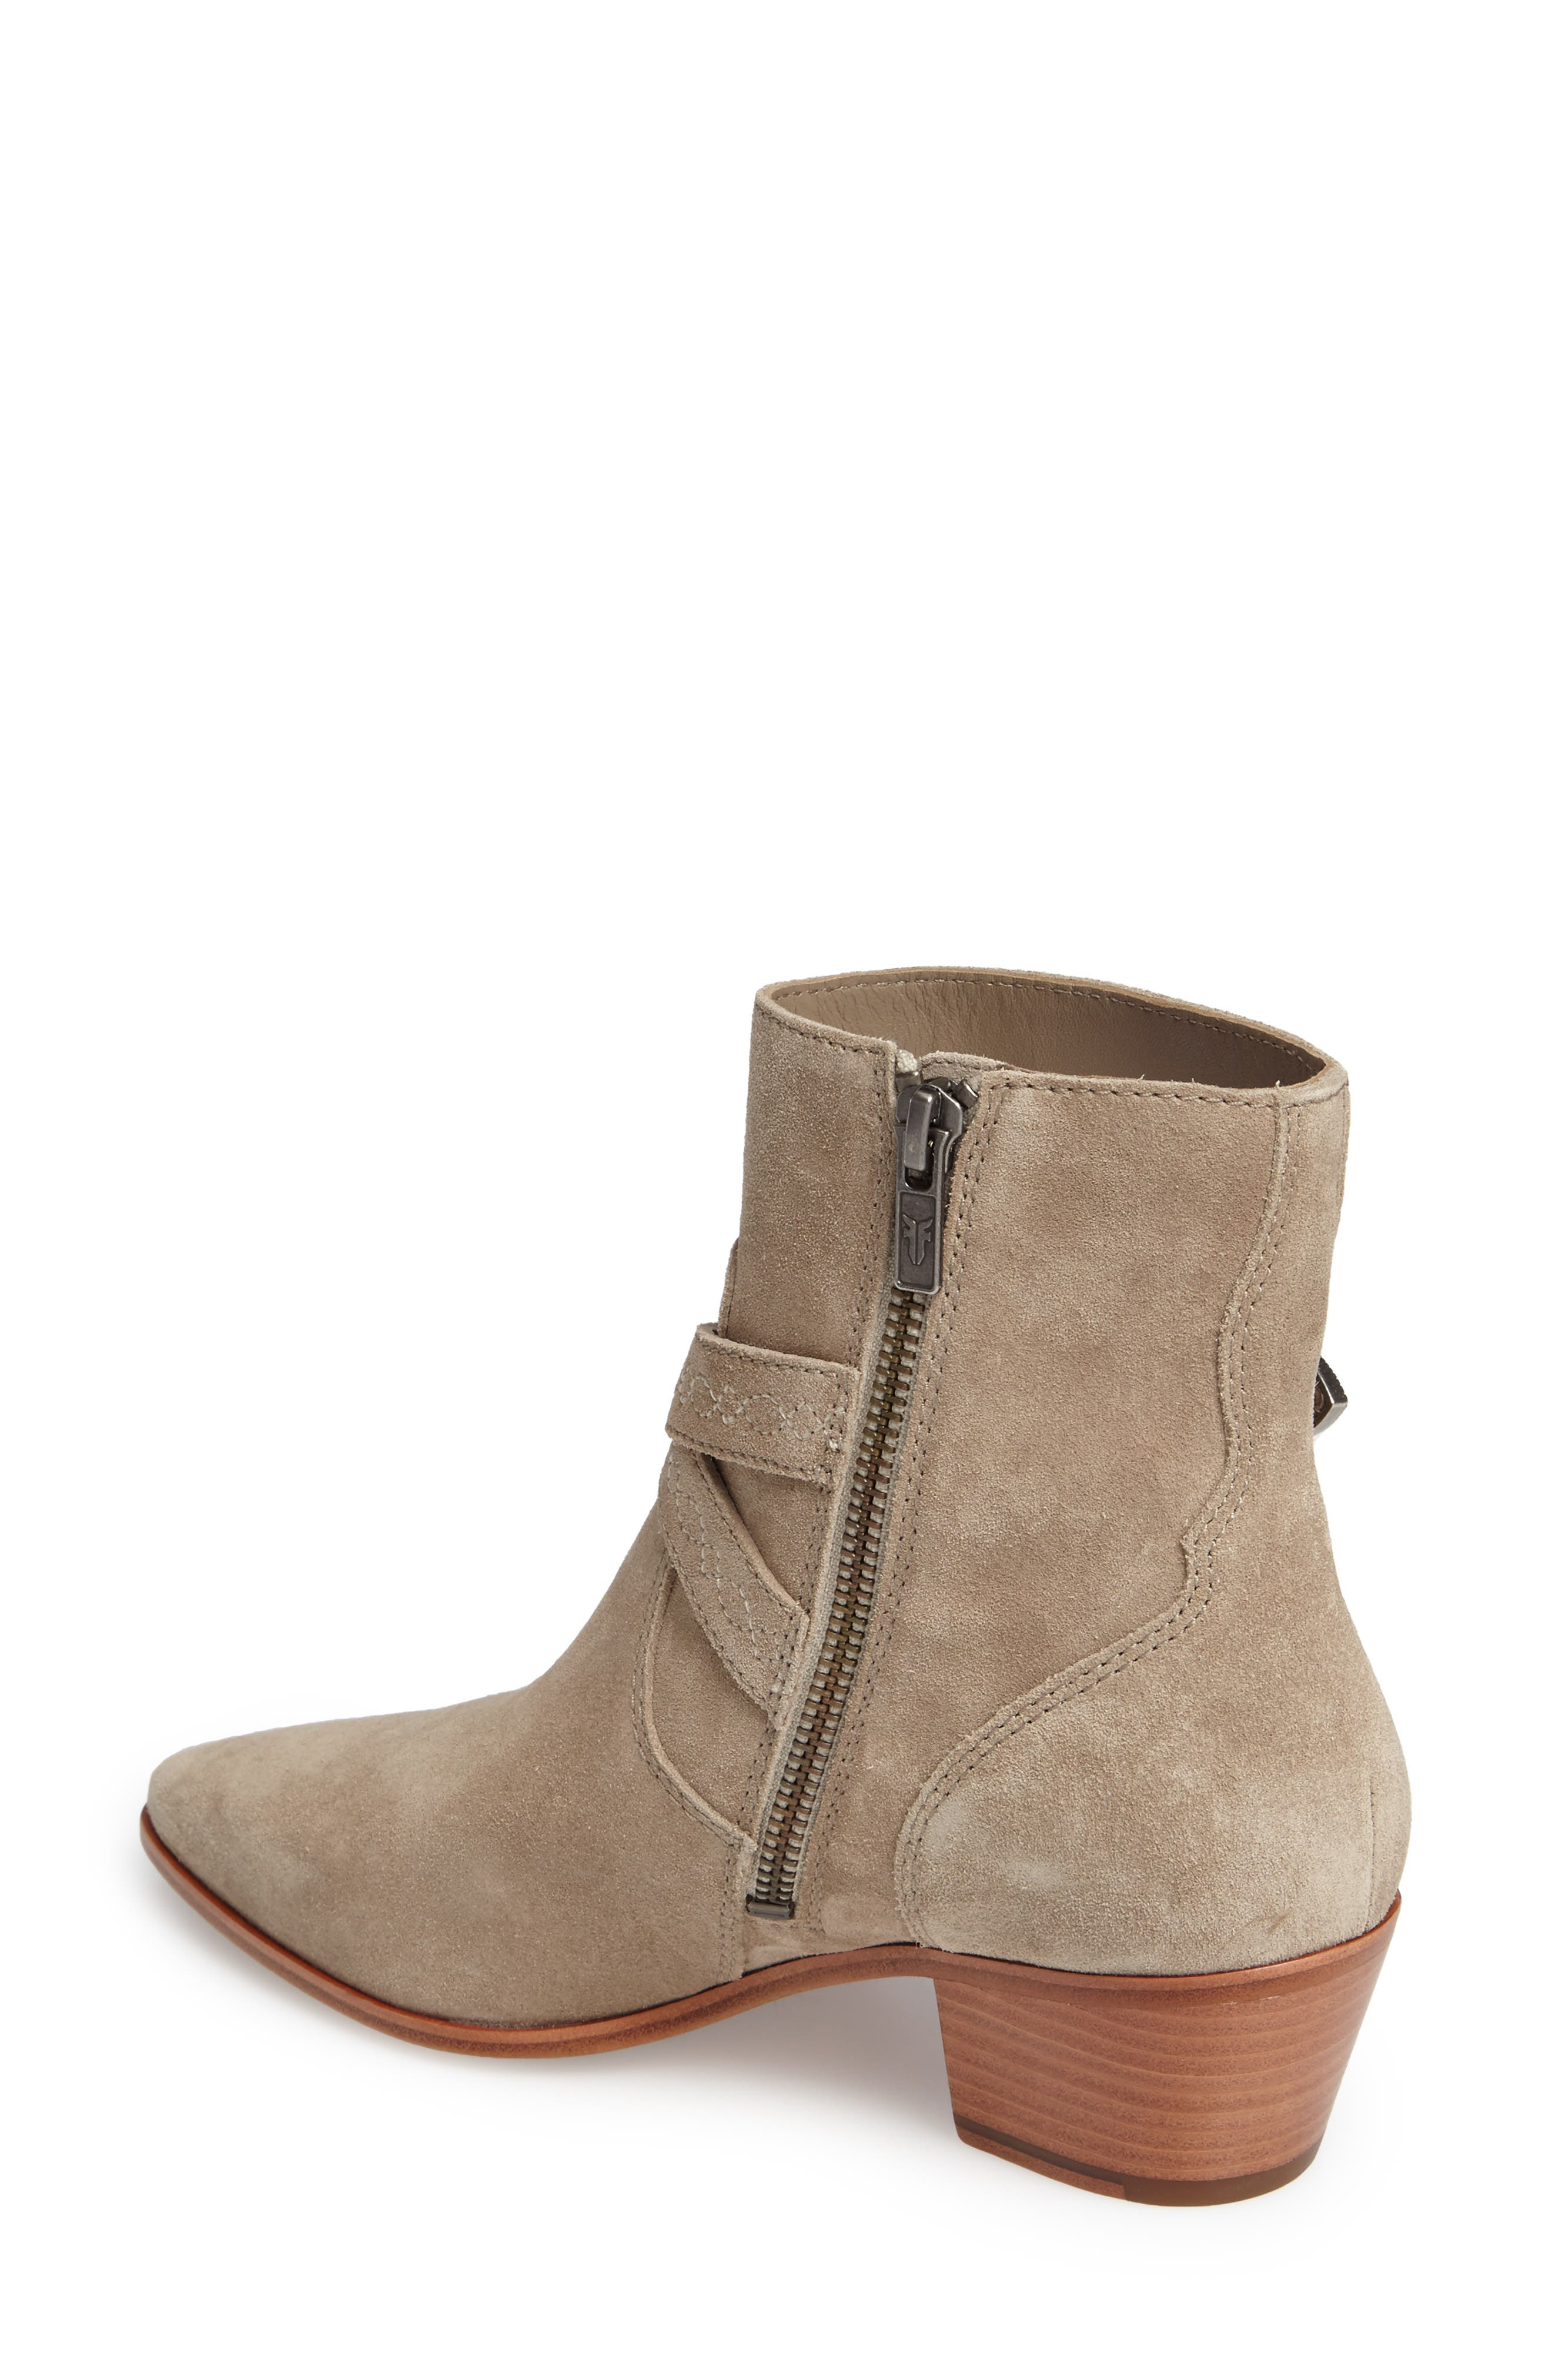 Ellen Buckle Strap Bootie,                             Alternate thumbnail 2, color,                             ASH